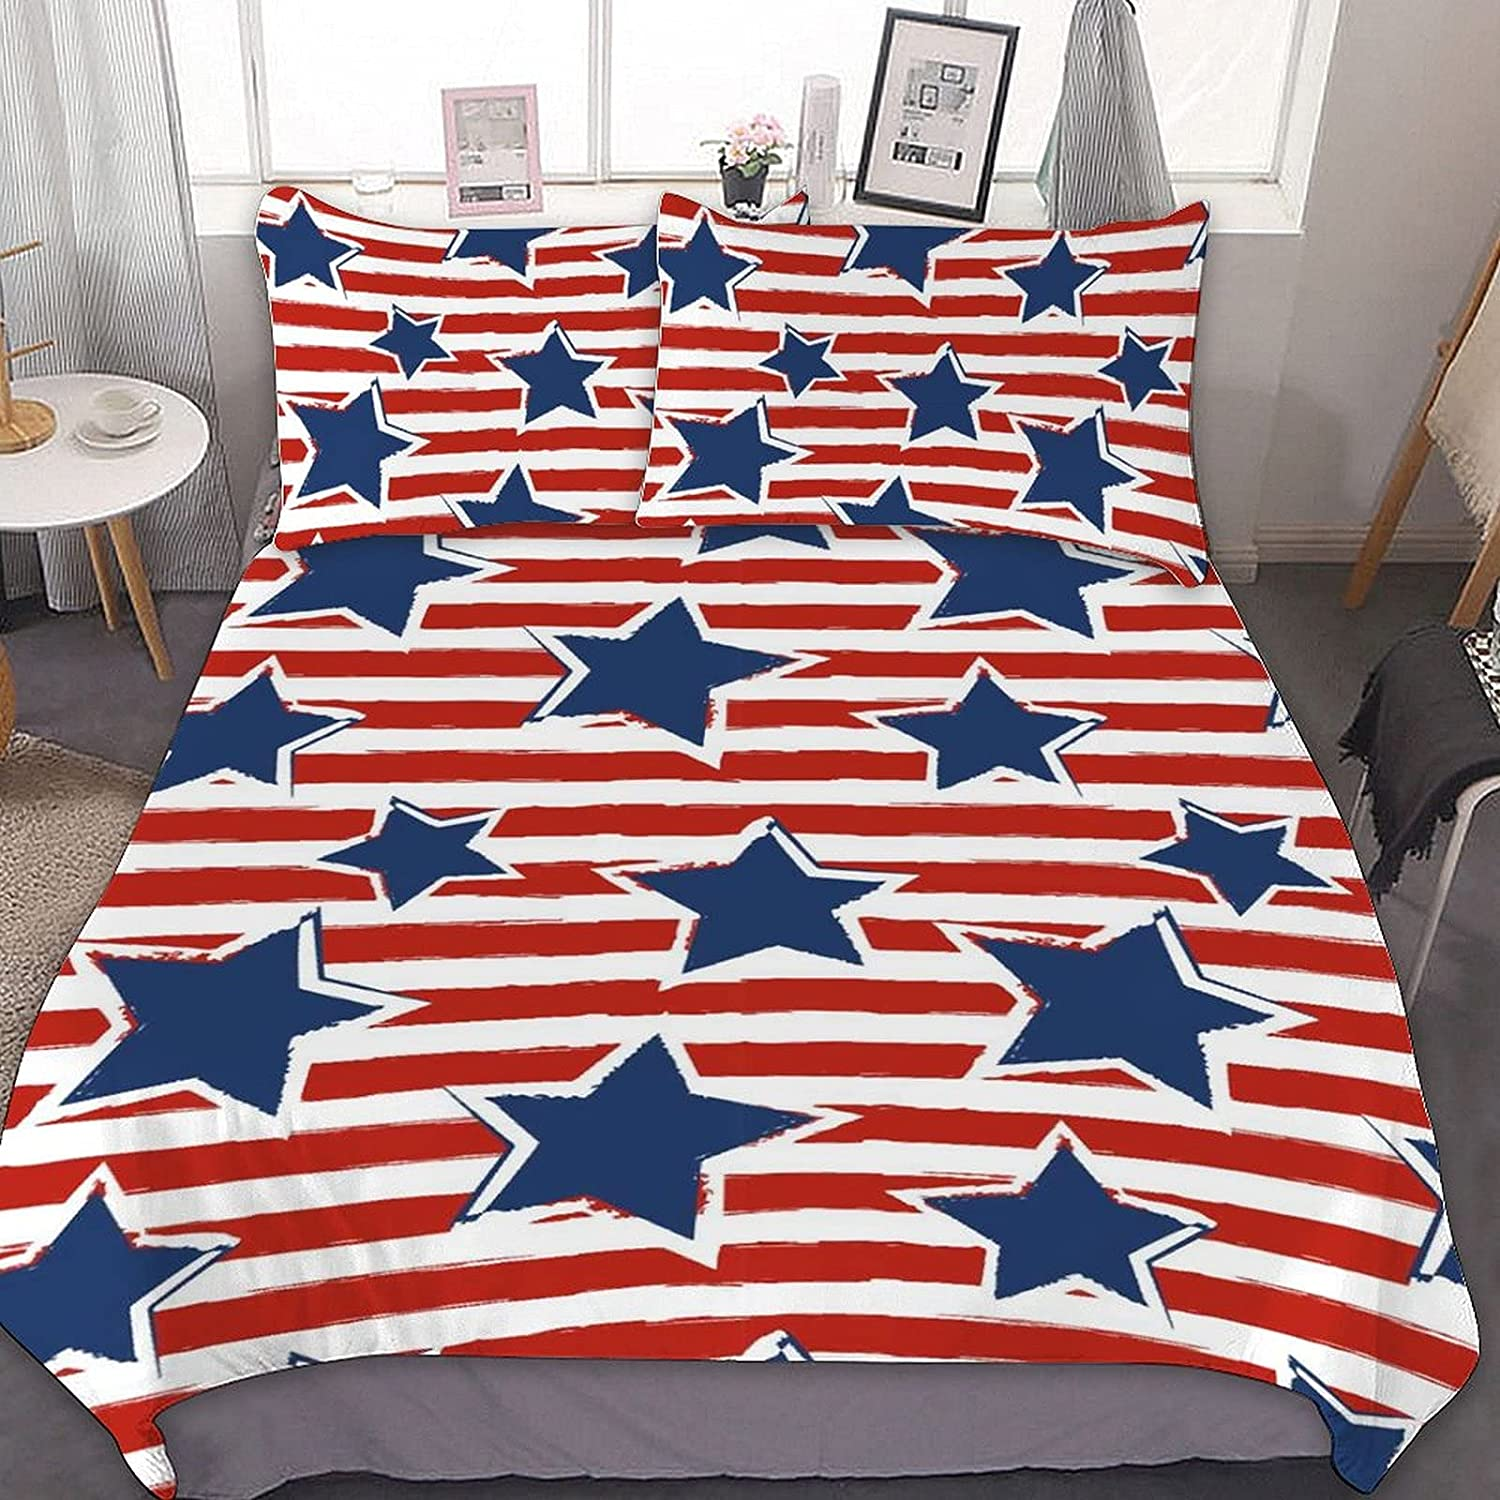 PNNUO US Stars Stripes Queen Bed Twin Comfort Size Excellence Set quality assurance King Full